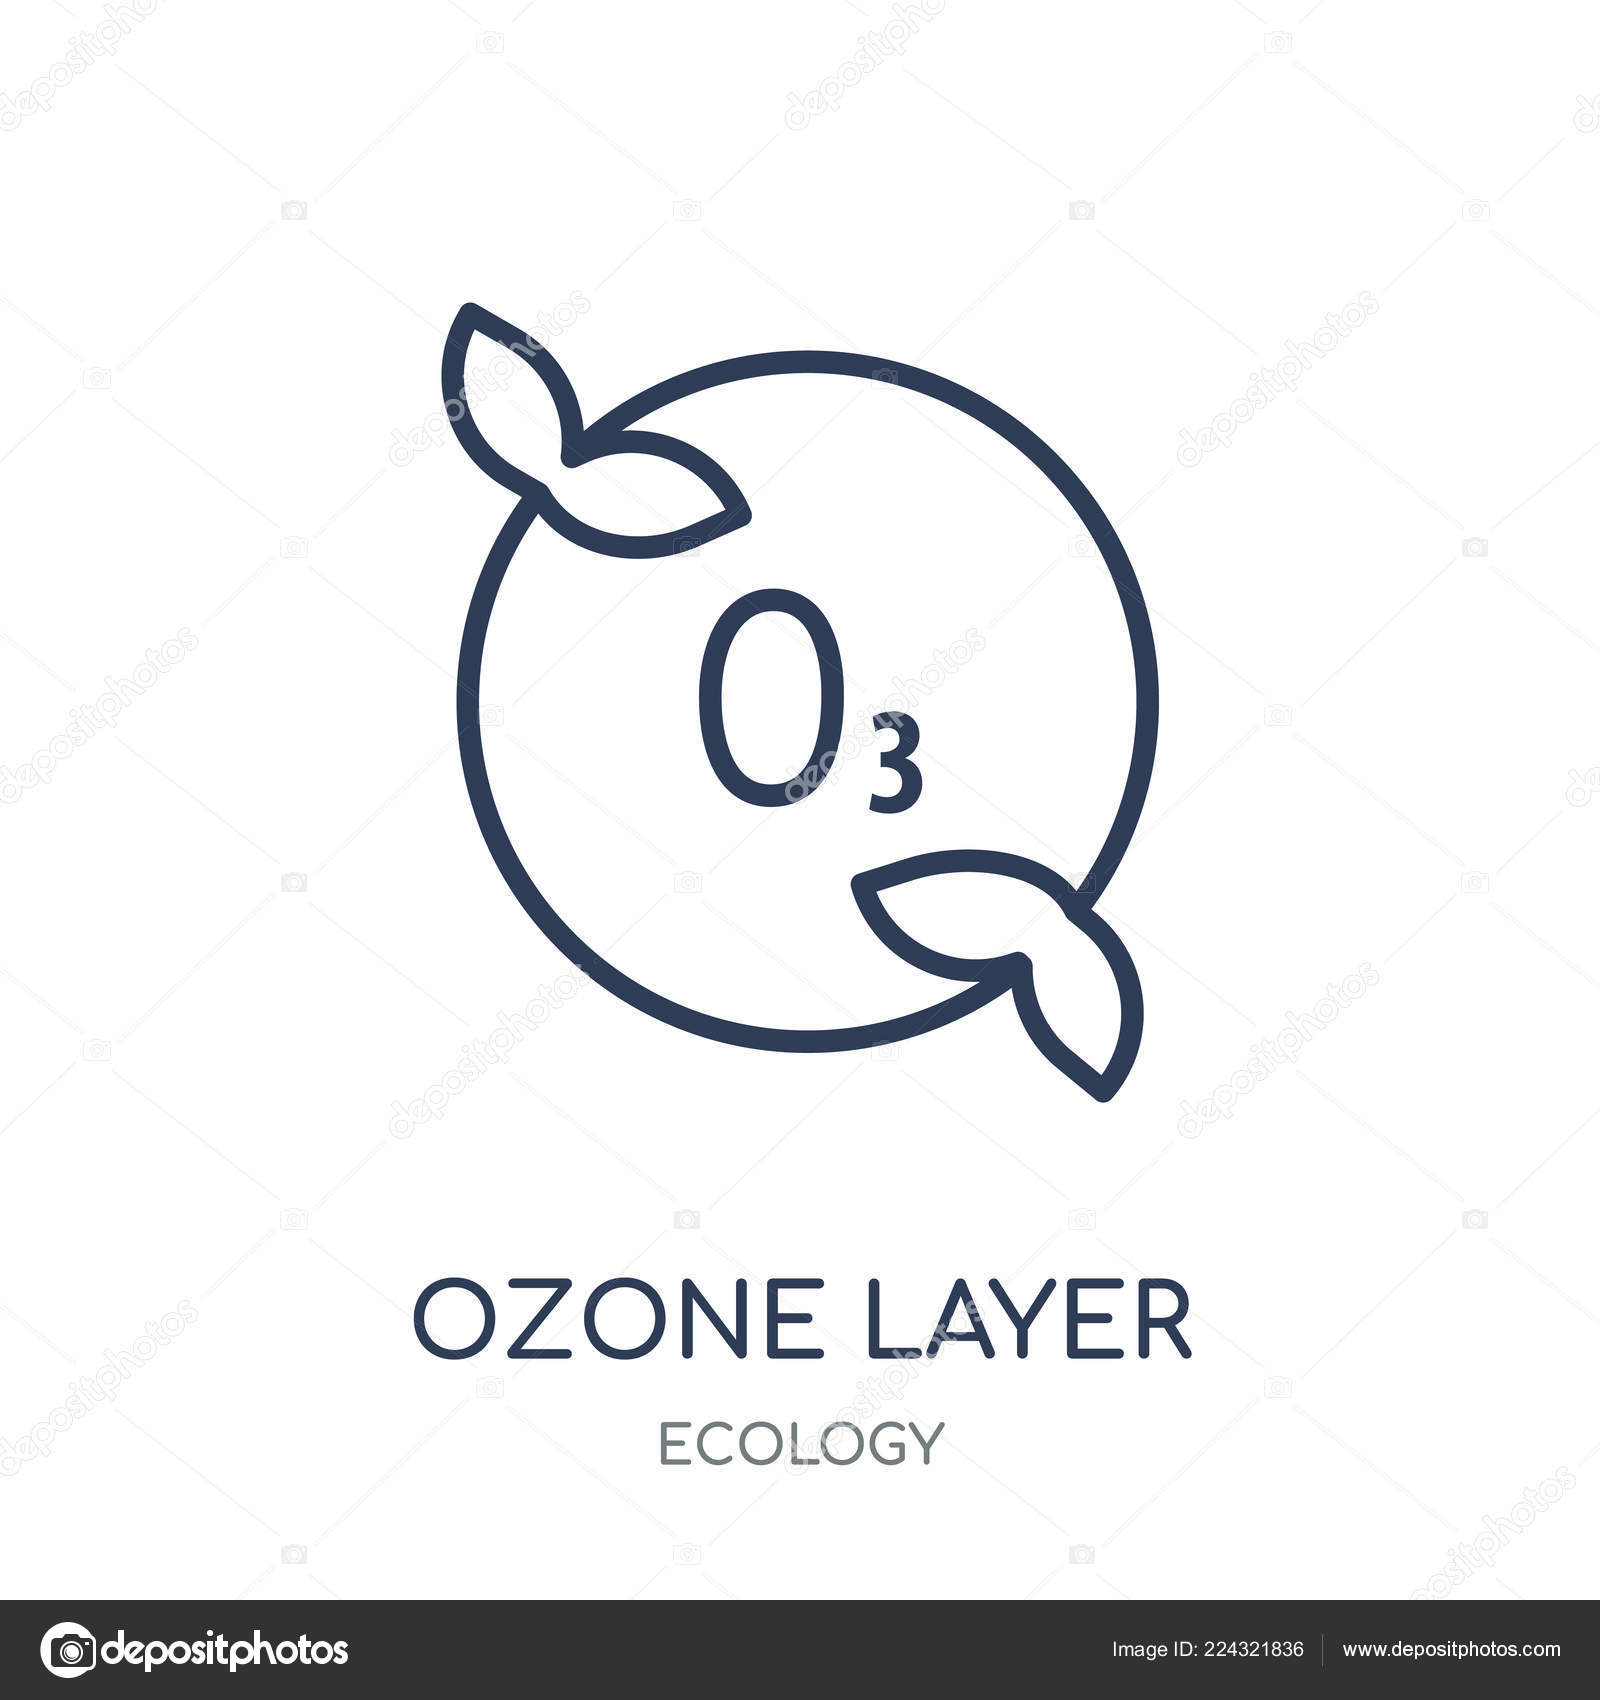 Ozone Layer Icon Ozone Layer Linear Symbol Design Ecology Collection